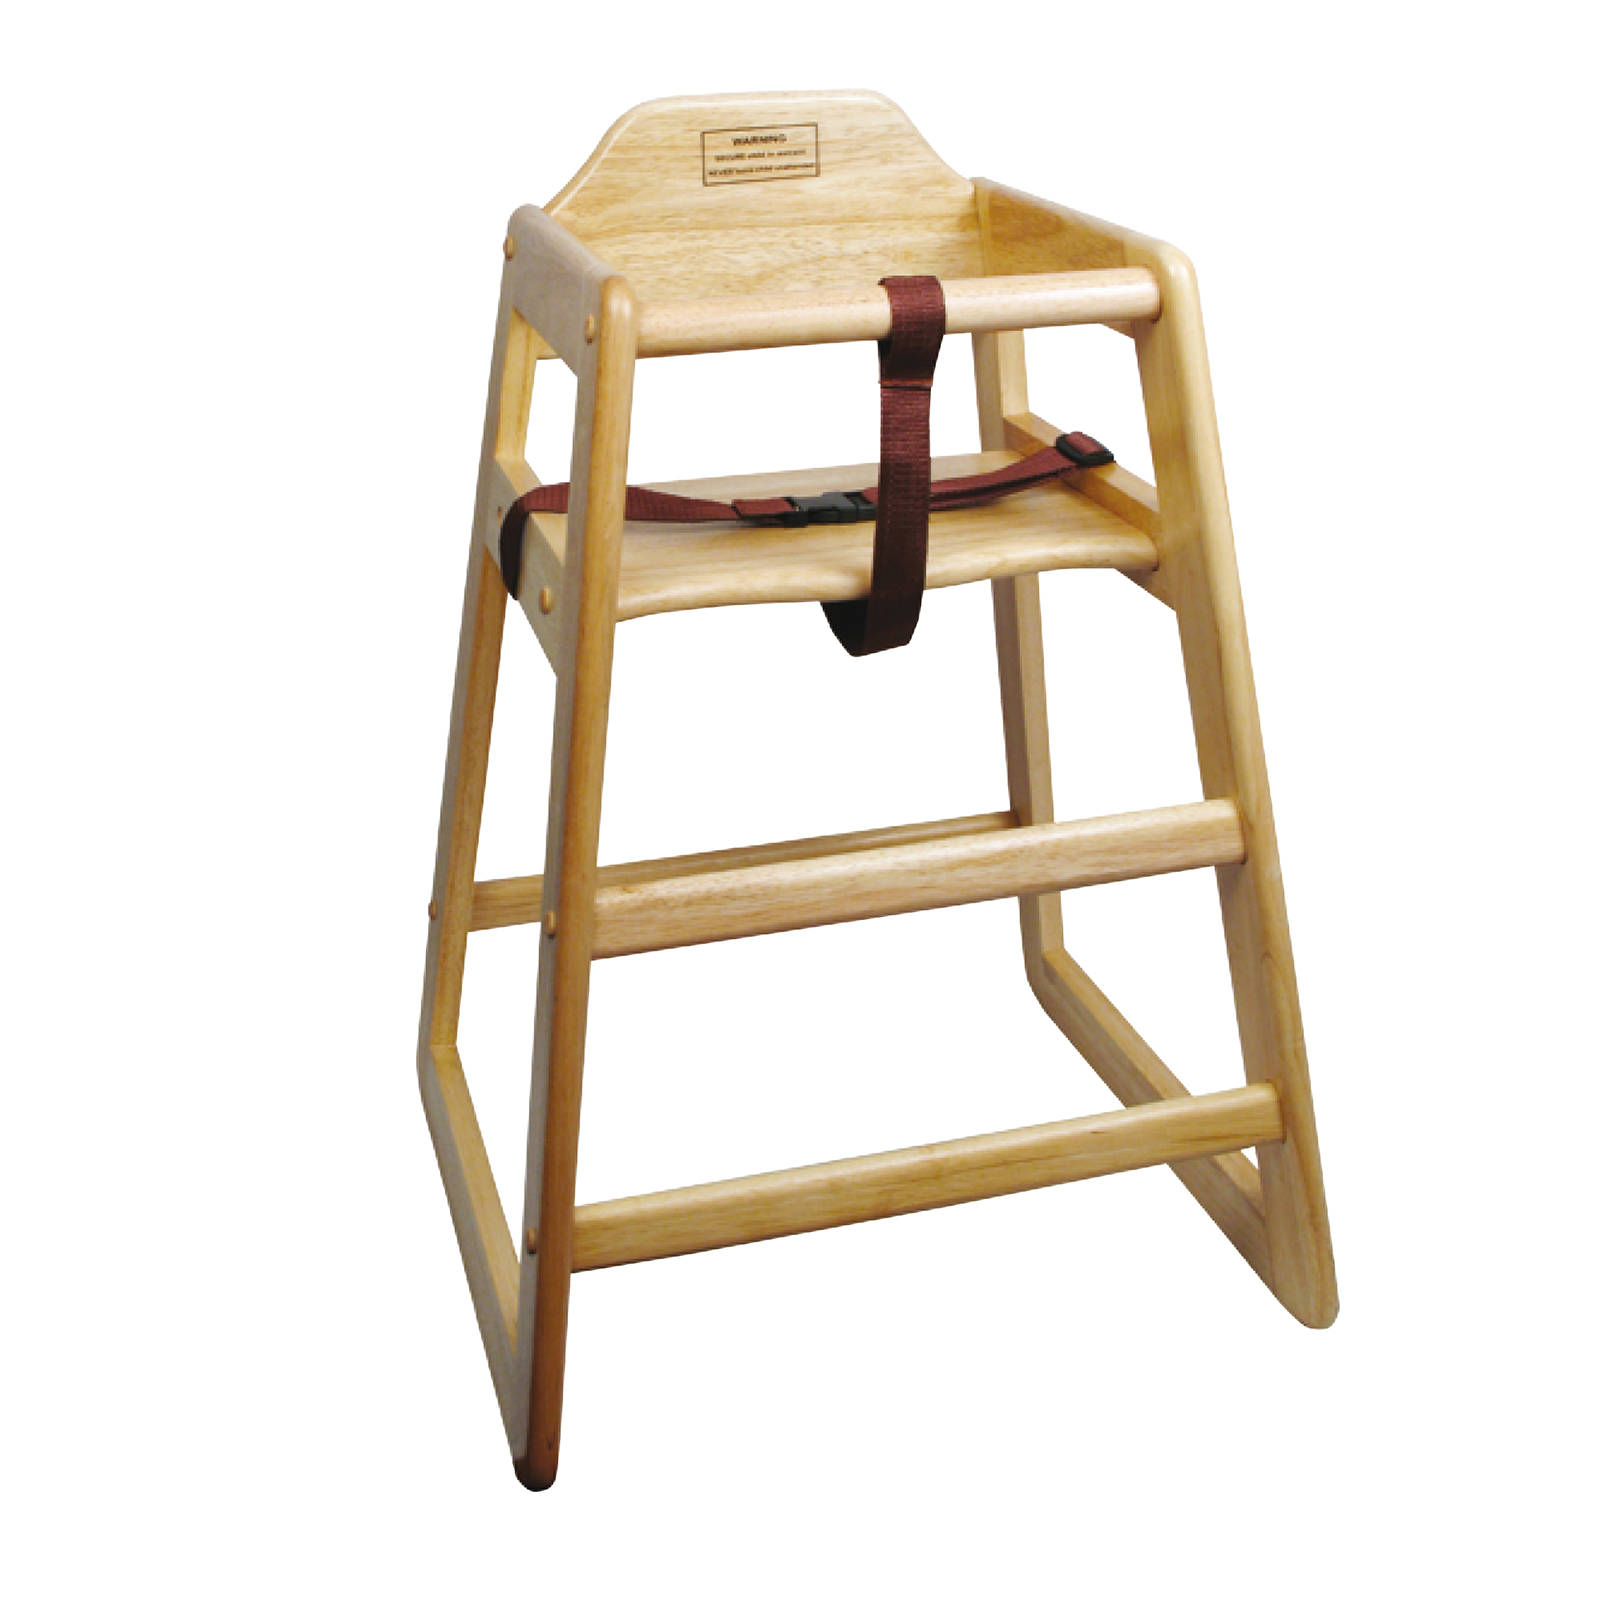 Winco CHH-101 high chair, wood